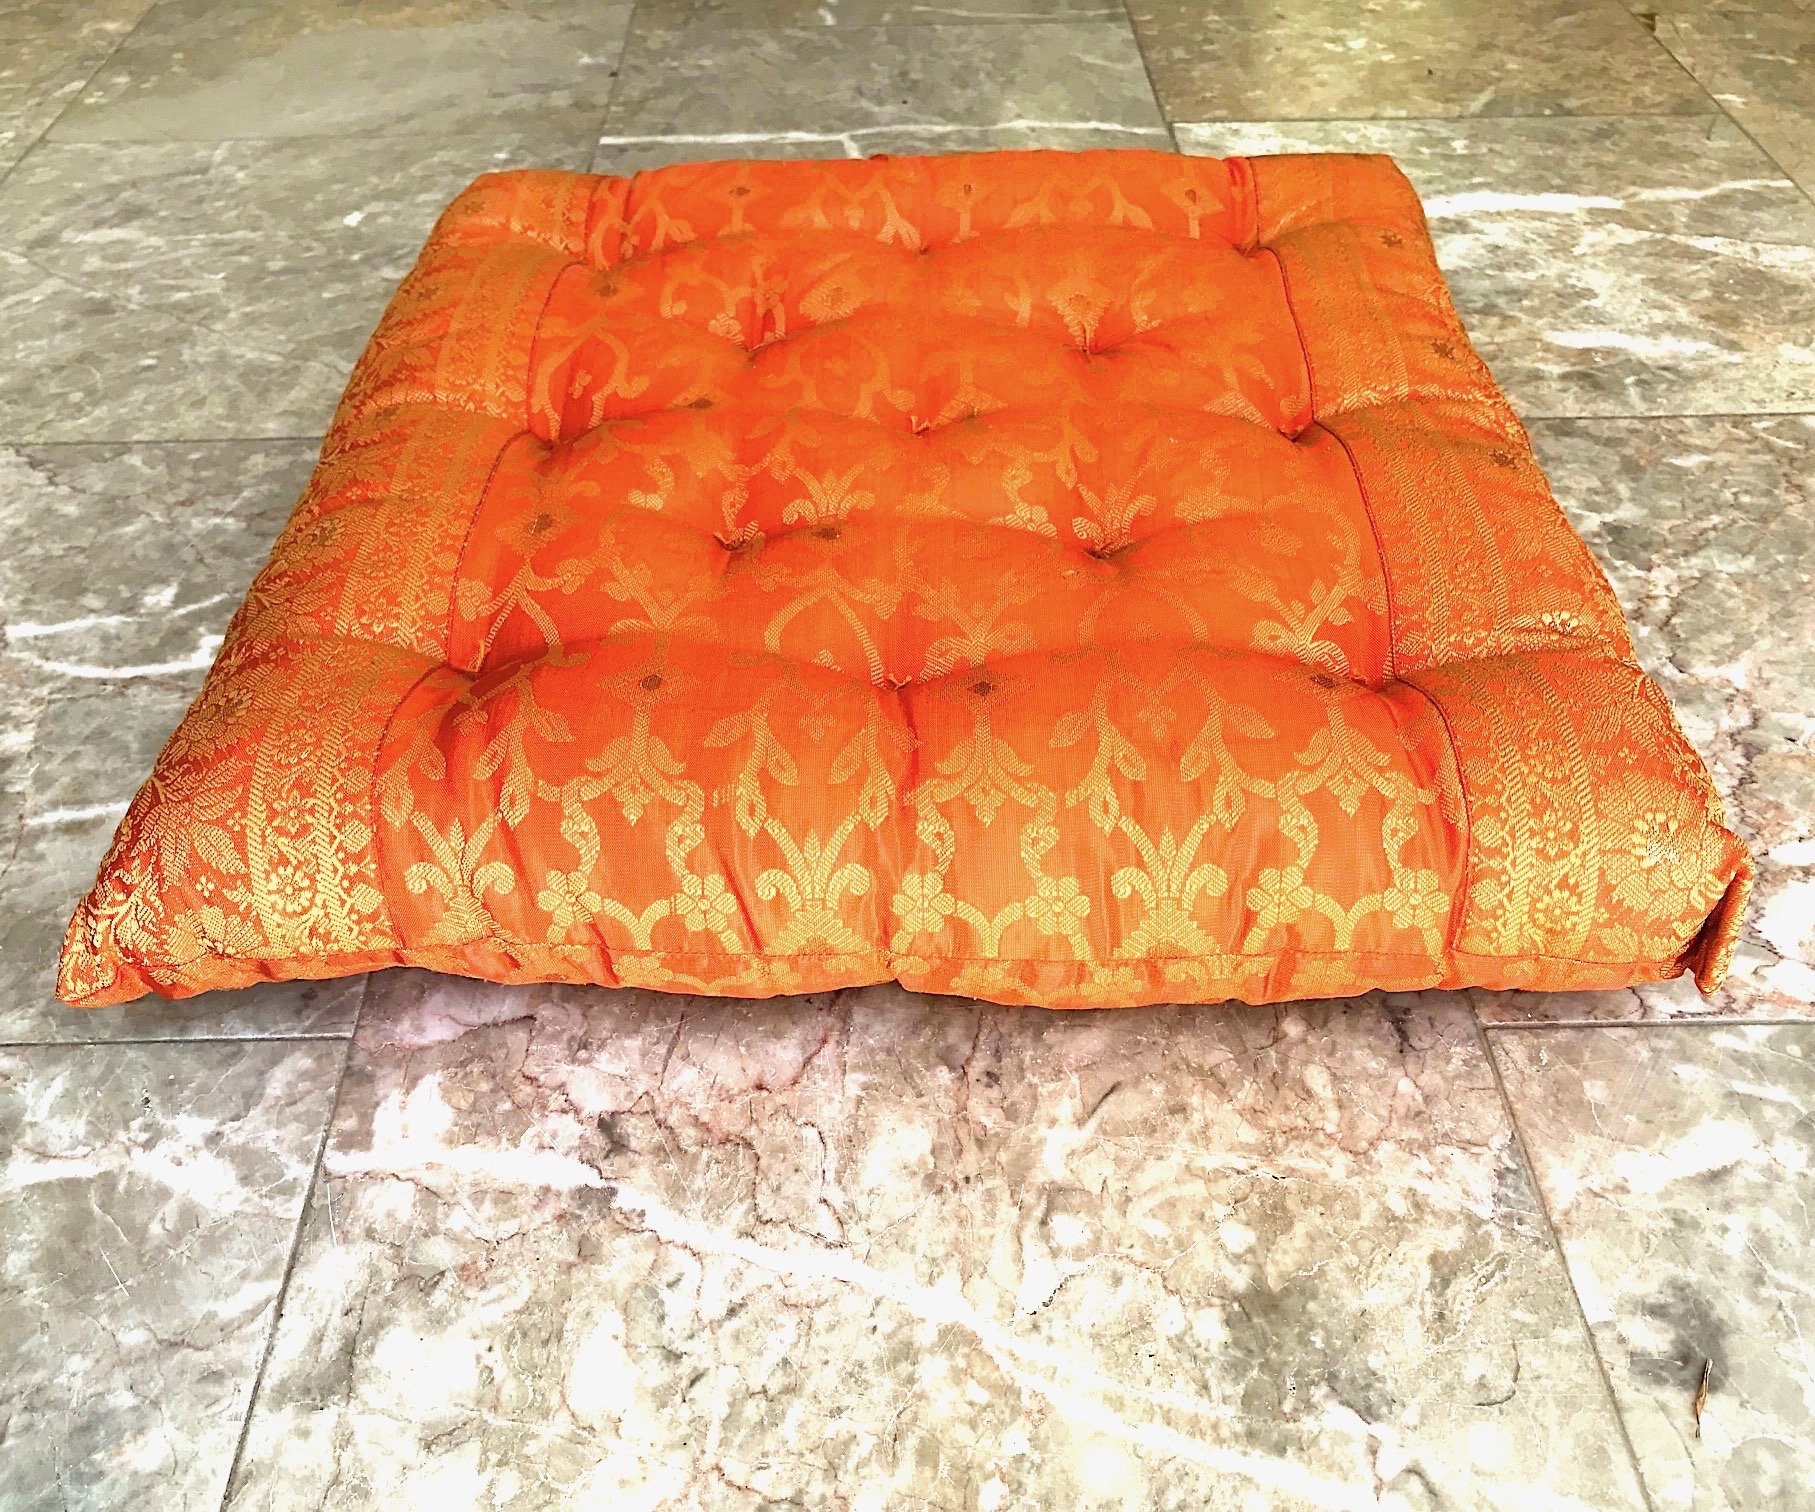 Worldcraft Industries Embroidered Orange Chair Cushion filled with natural cotton and hand tufted. The Kela Sari features a vine embroidered pattern and is trimmed with an intricate border.